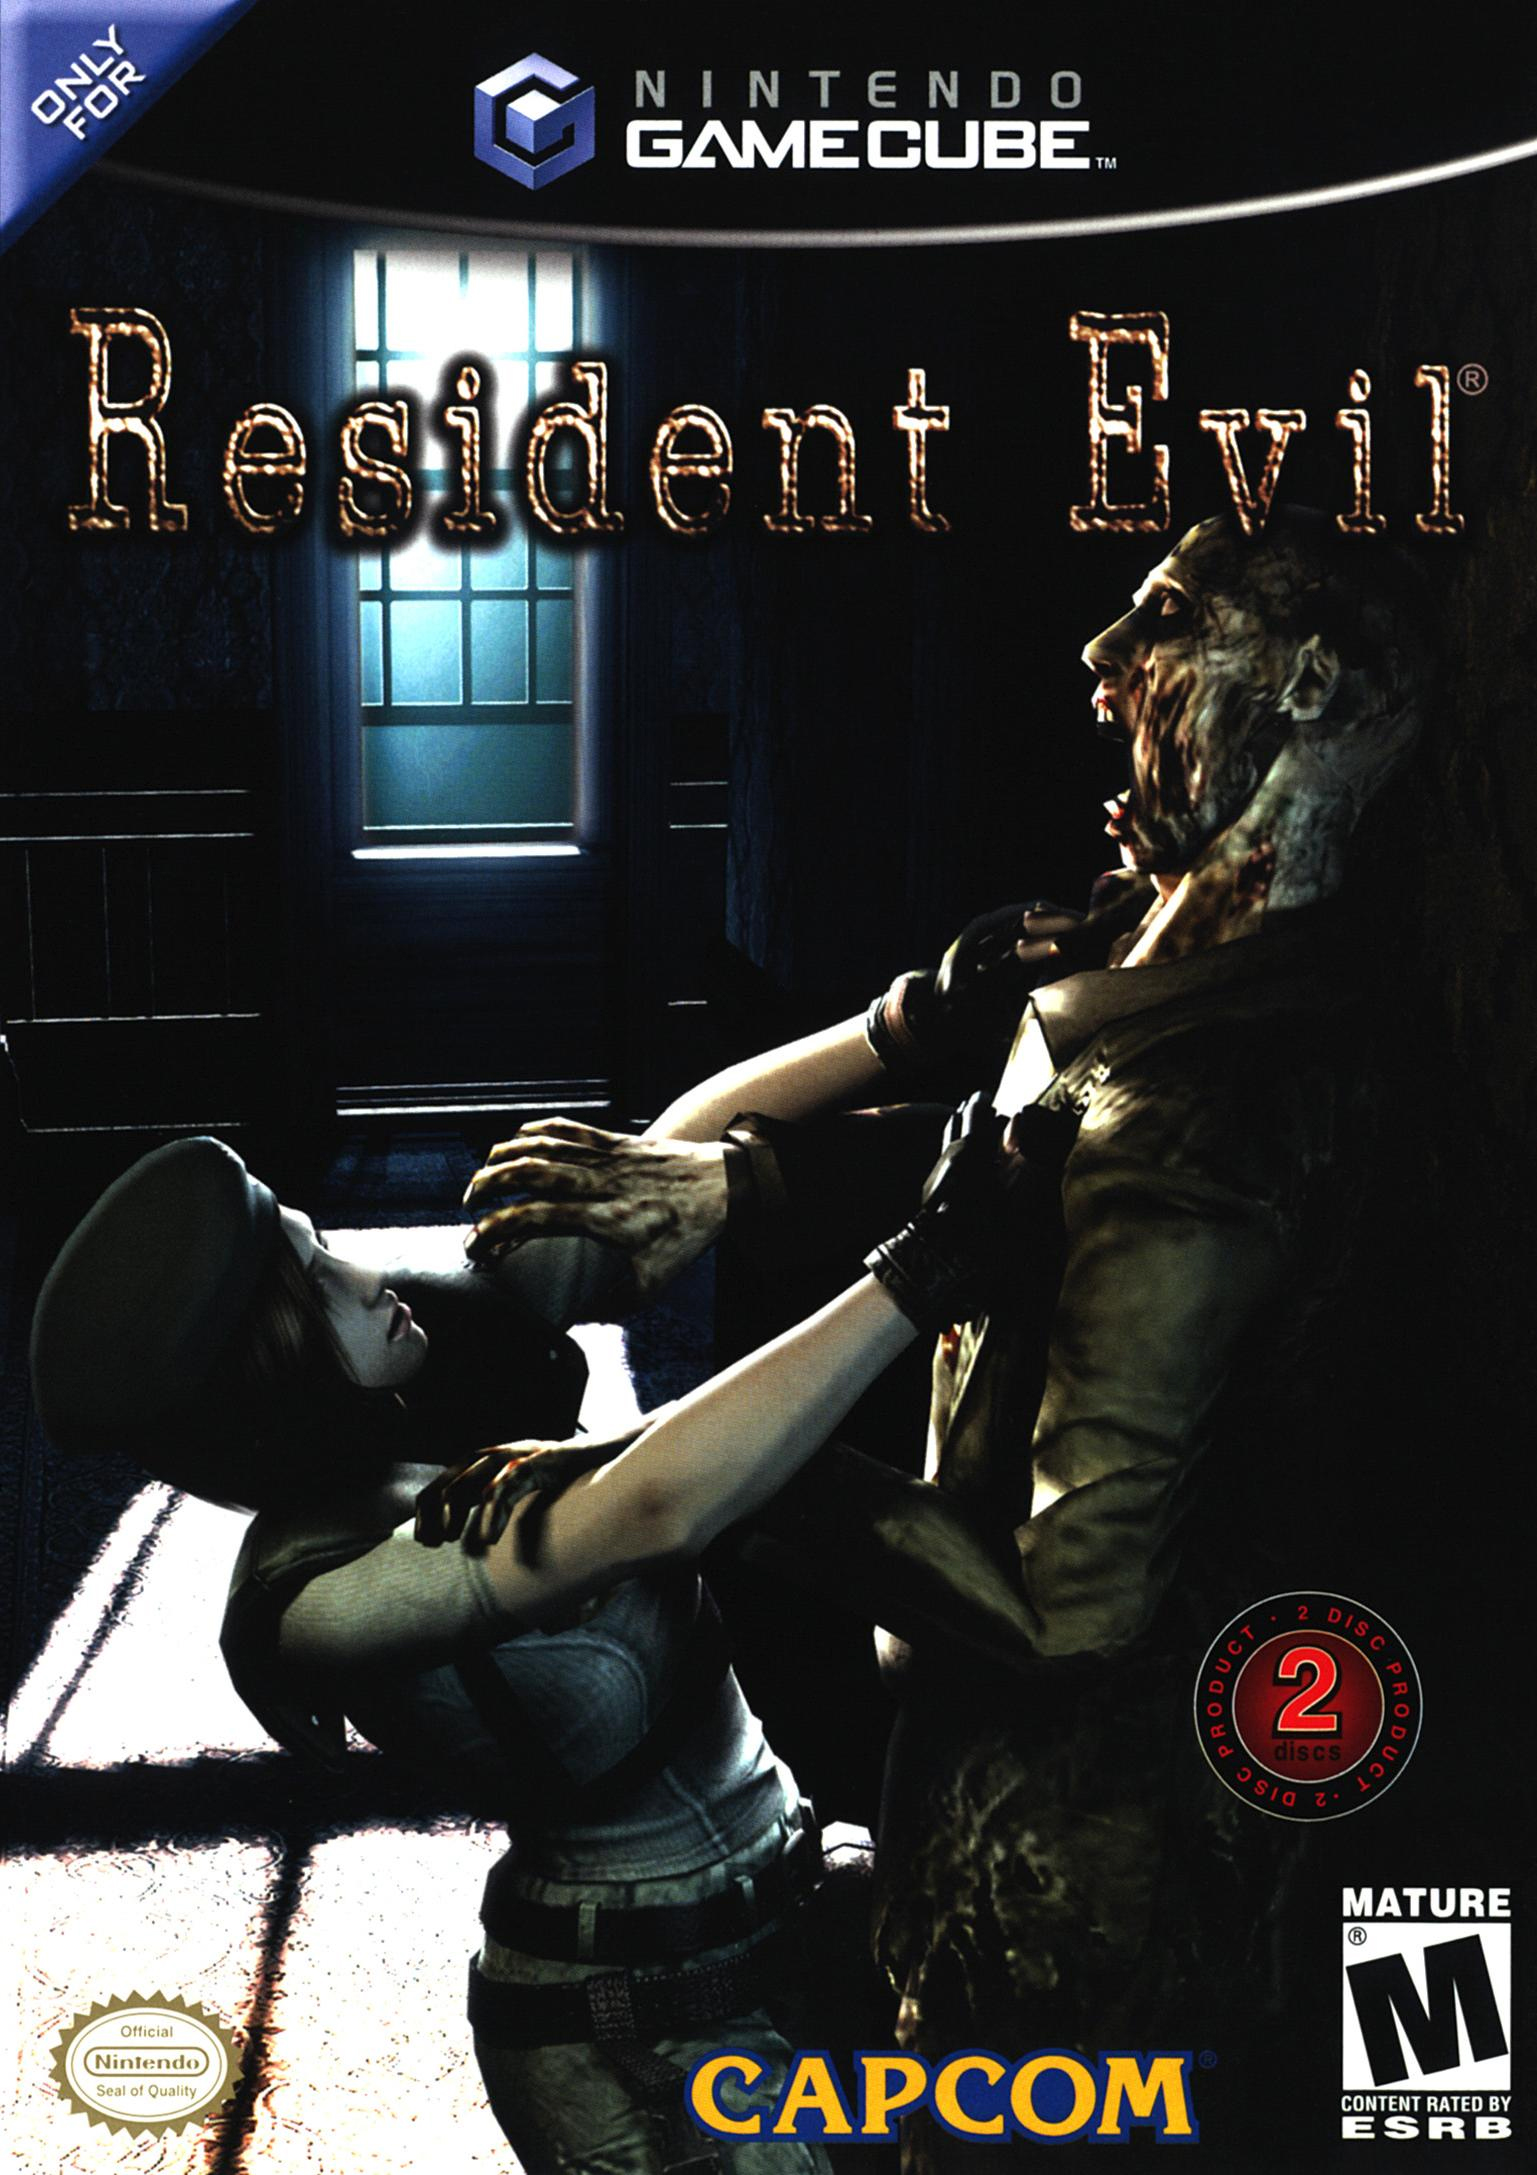 http://static2.wikia.nocookie.net/__cb20120821205506/residentevil/es/images/a/a3/Resident-evil-cover.jpg